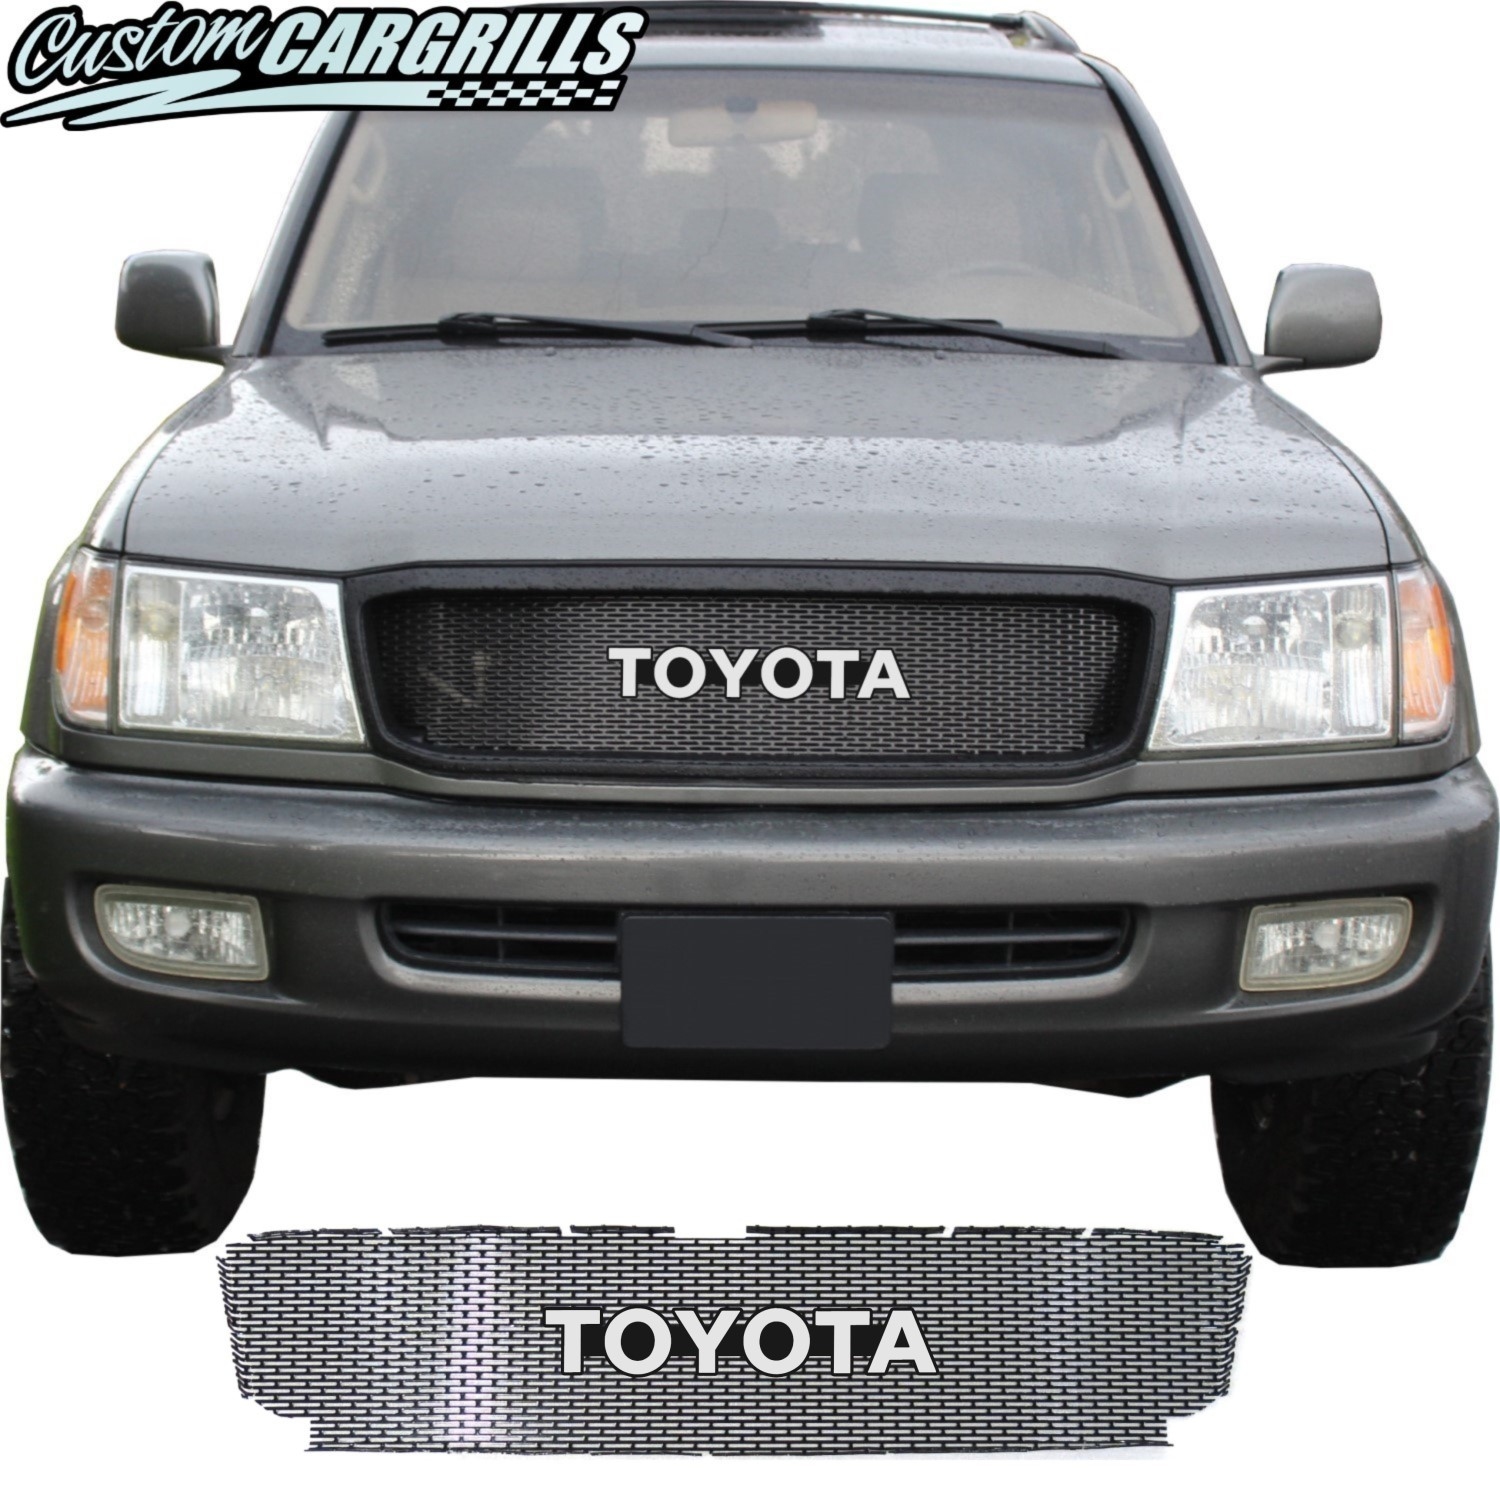 1998 - 2002 Toyota Land Cruiser Series 100 Grill Mesh and Toyota Emblem